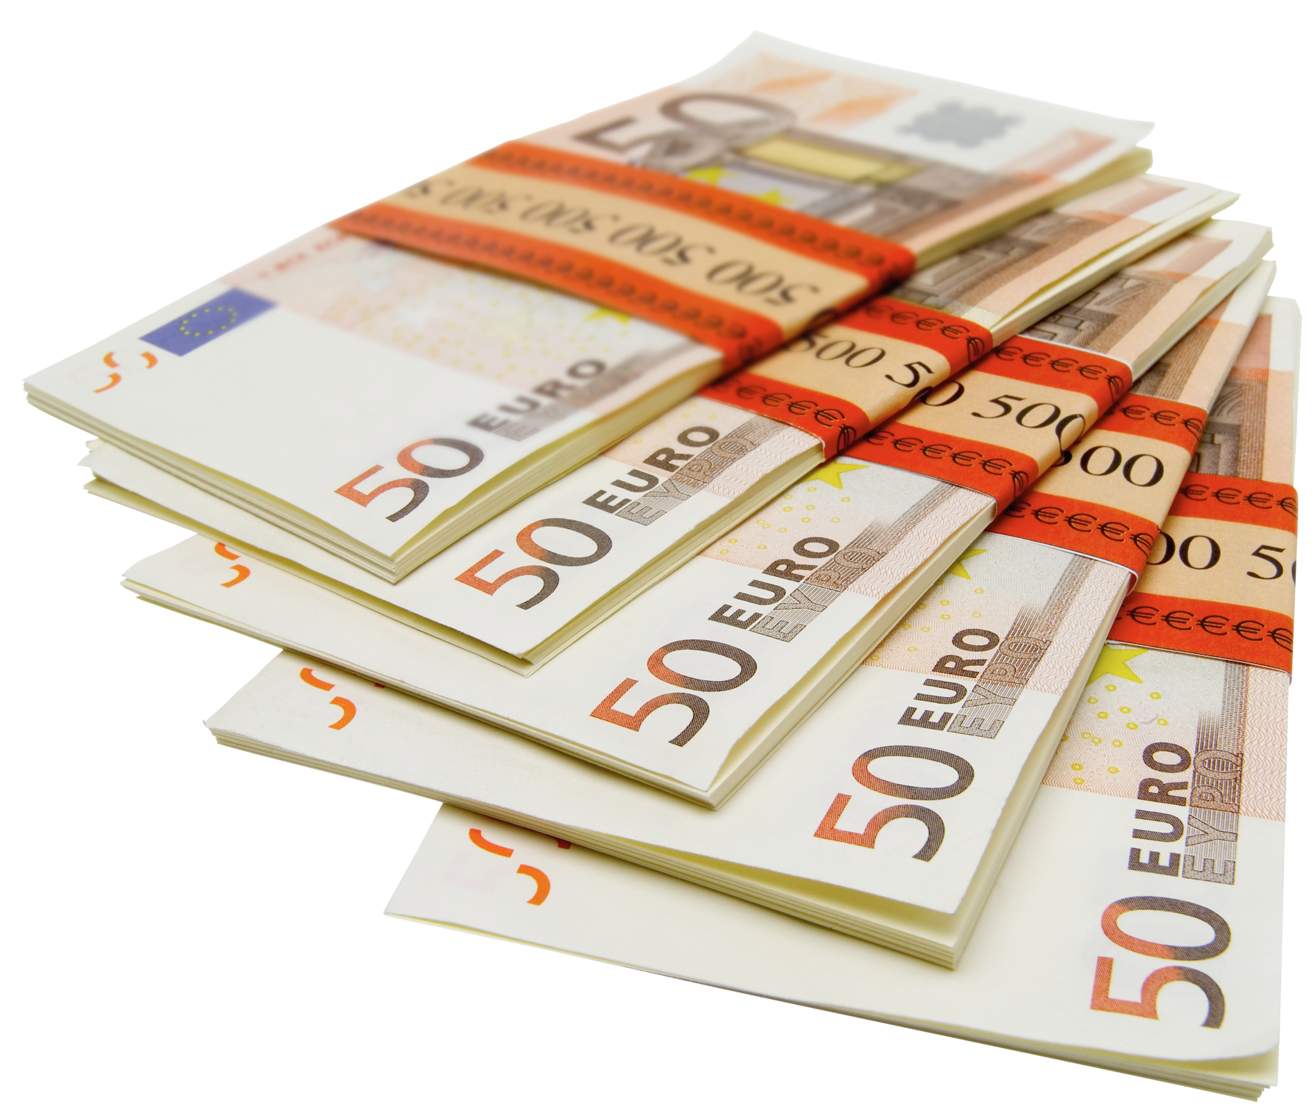 euro picture gallery. Money stacks png